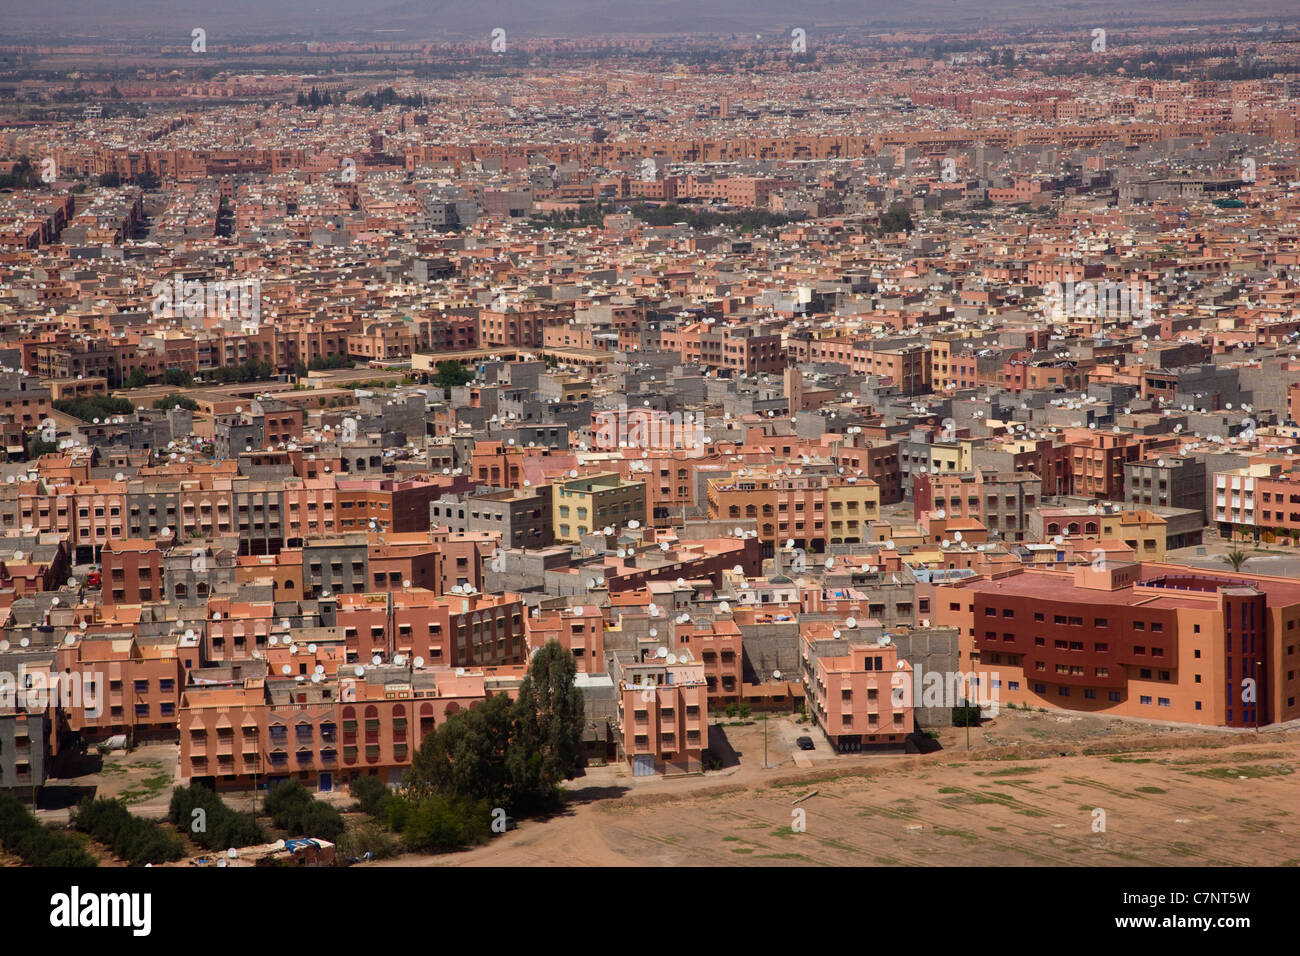 View of Marrakesh from the aeroplane window - Stock Image